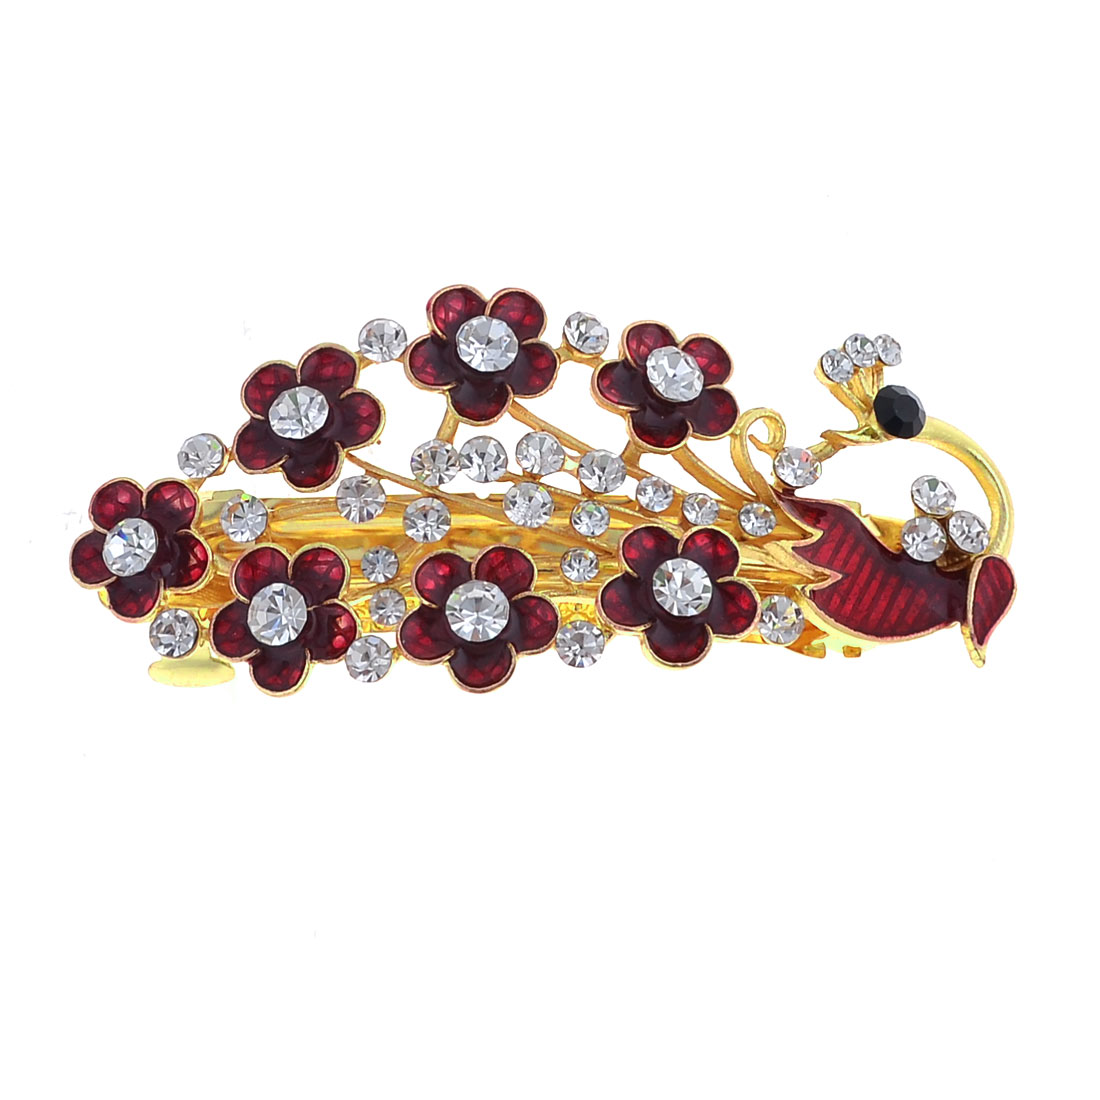 Lady Dark Red Peacock Design Flower Decor Barrette French Clip